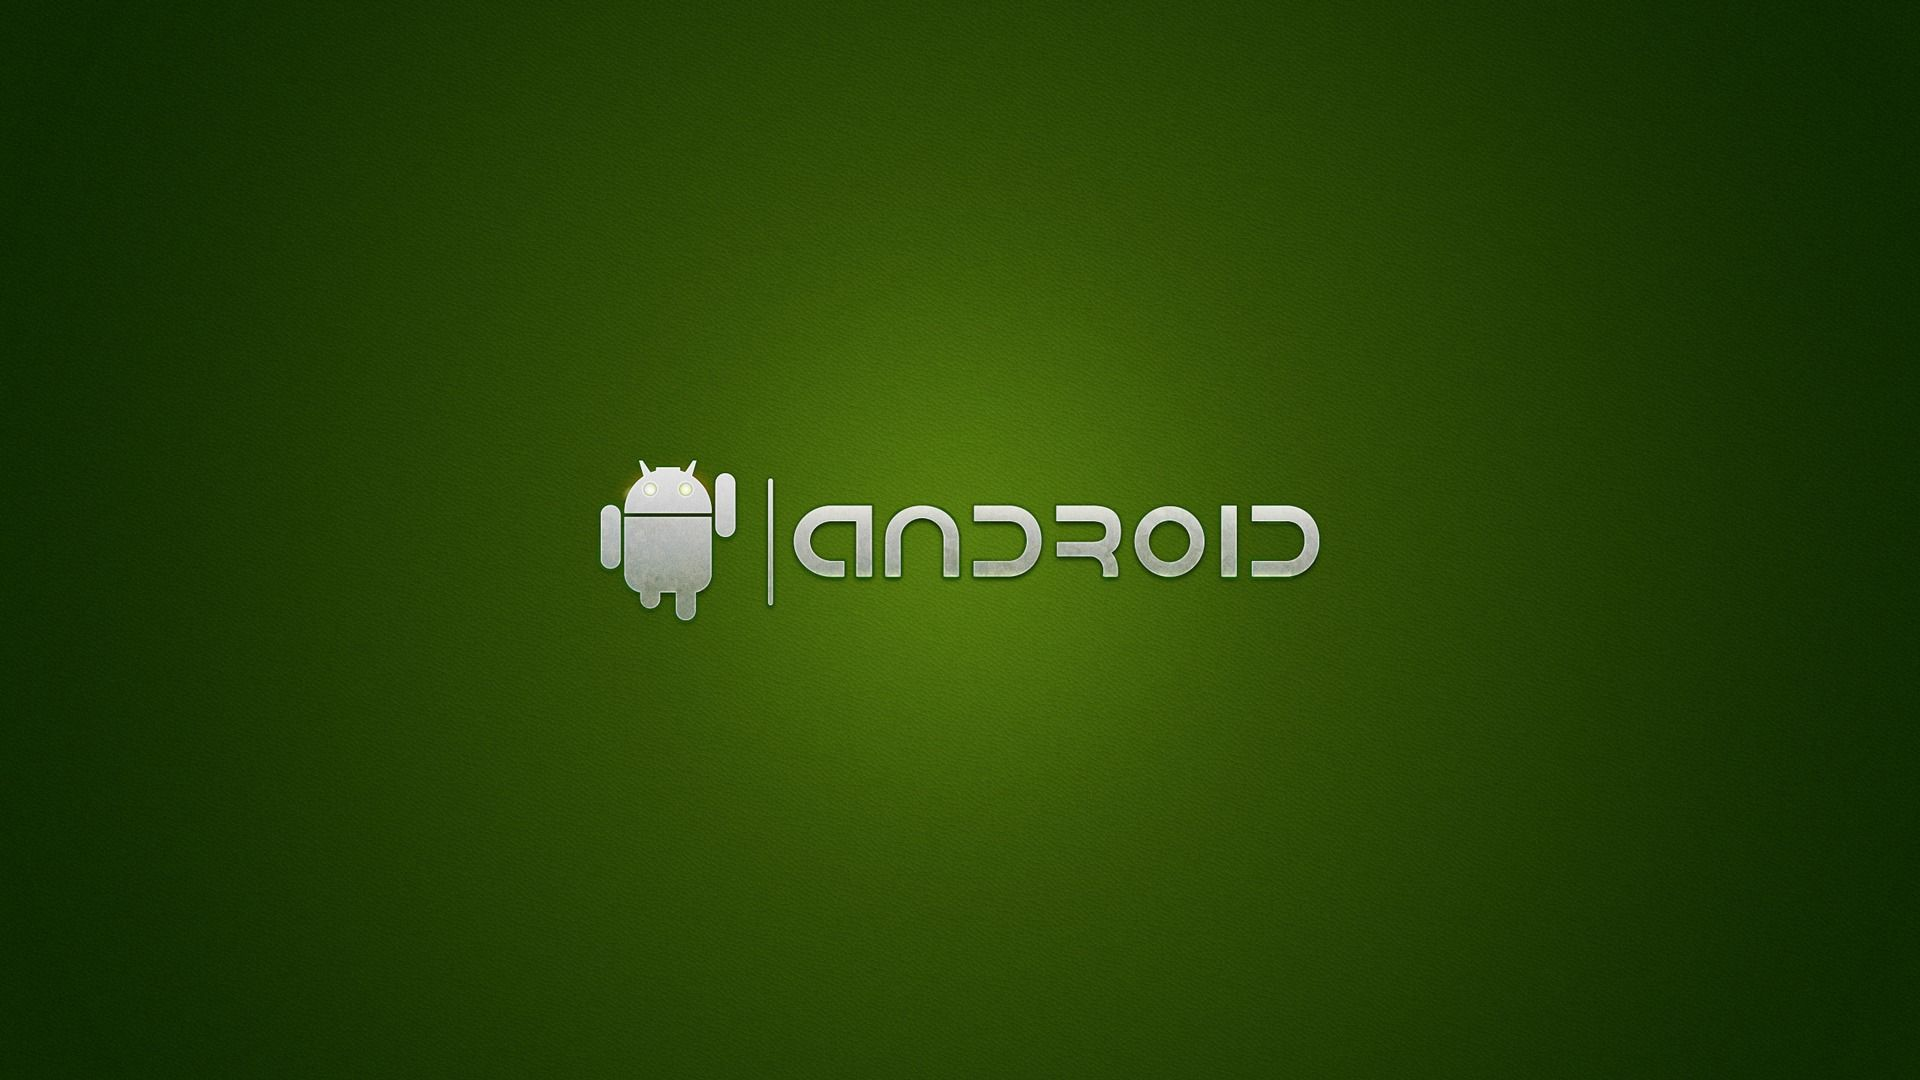 android developer placement feedback hd phone wallpapershd